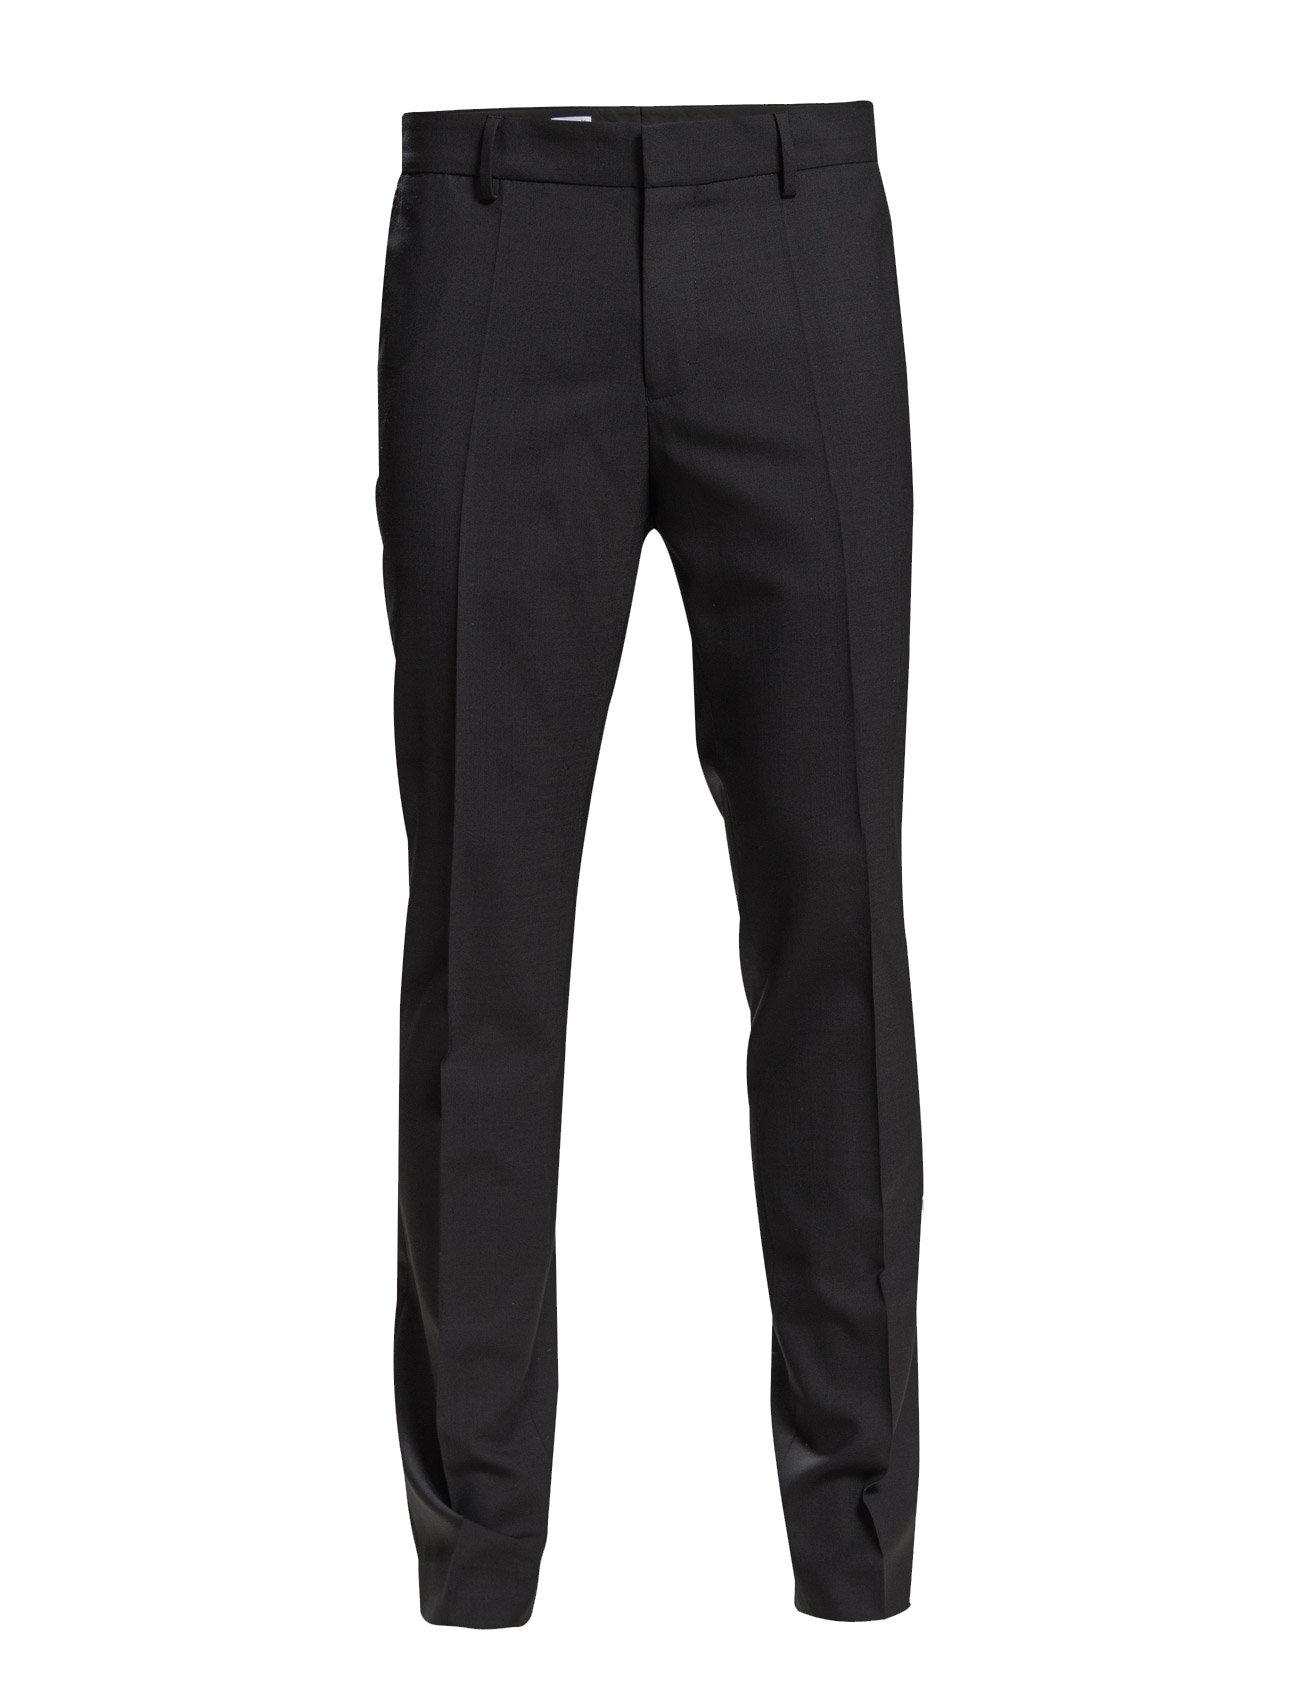 M. Liam Cool Wool Slacks Filippa K Formell